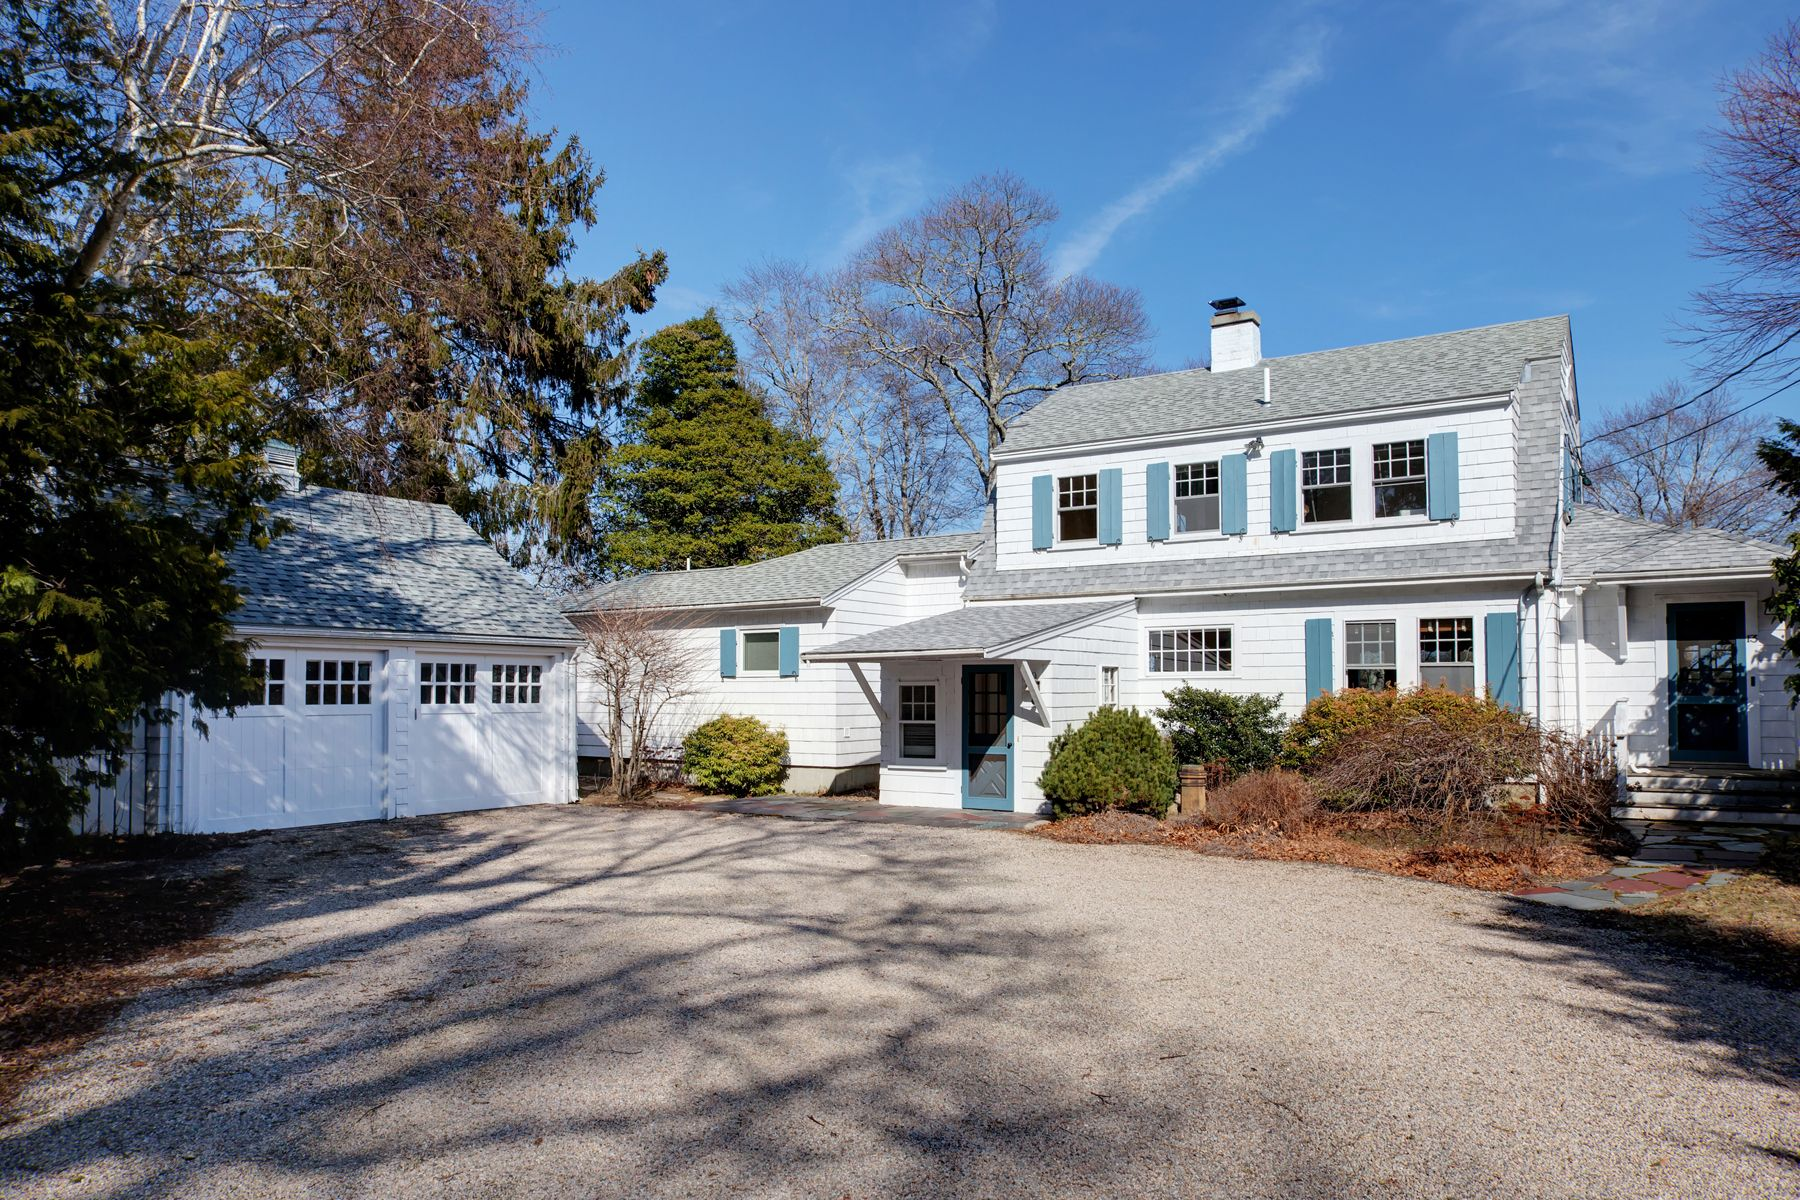 Single Family Home for Active at Waterfront On Oyster Pond 13 Fells Road Falmouth, Massachusetts 02540 United States